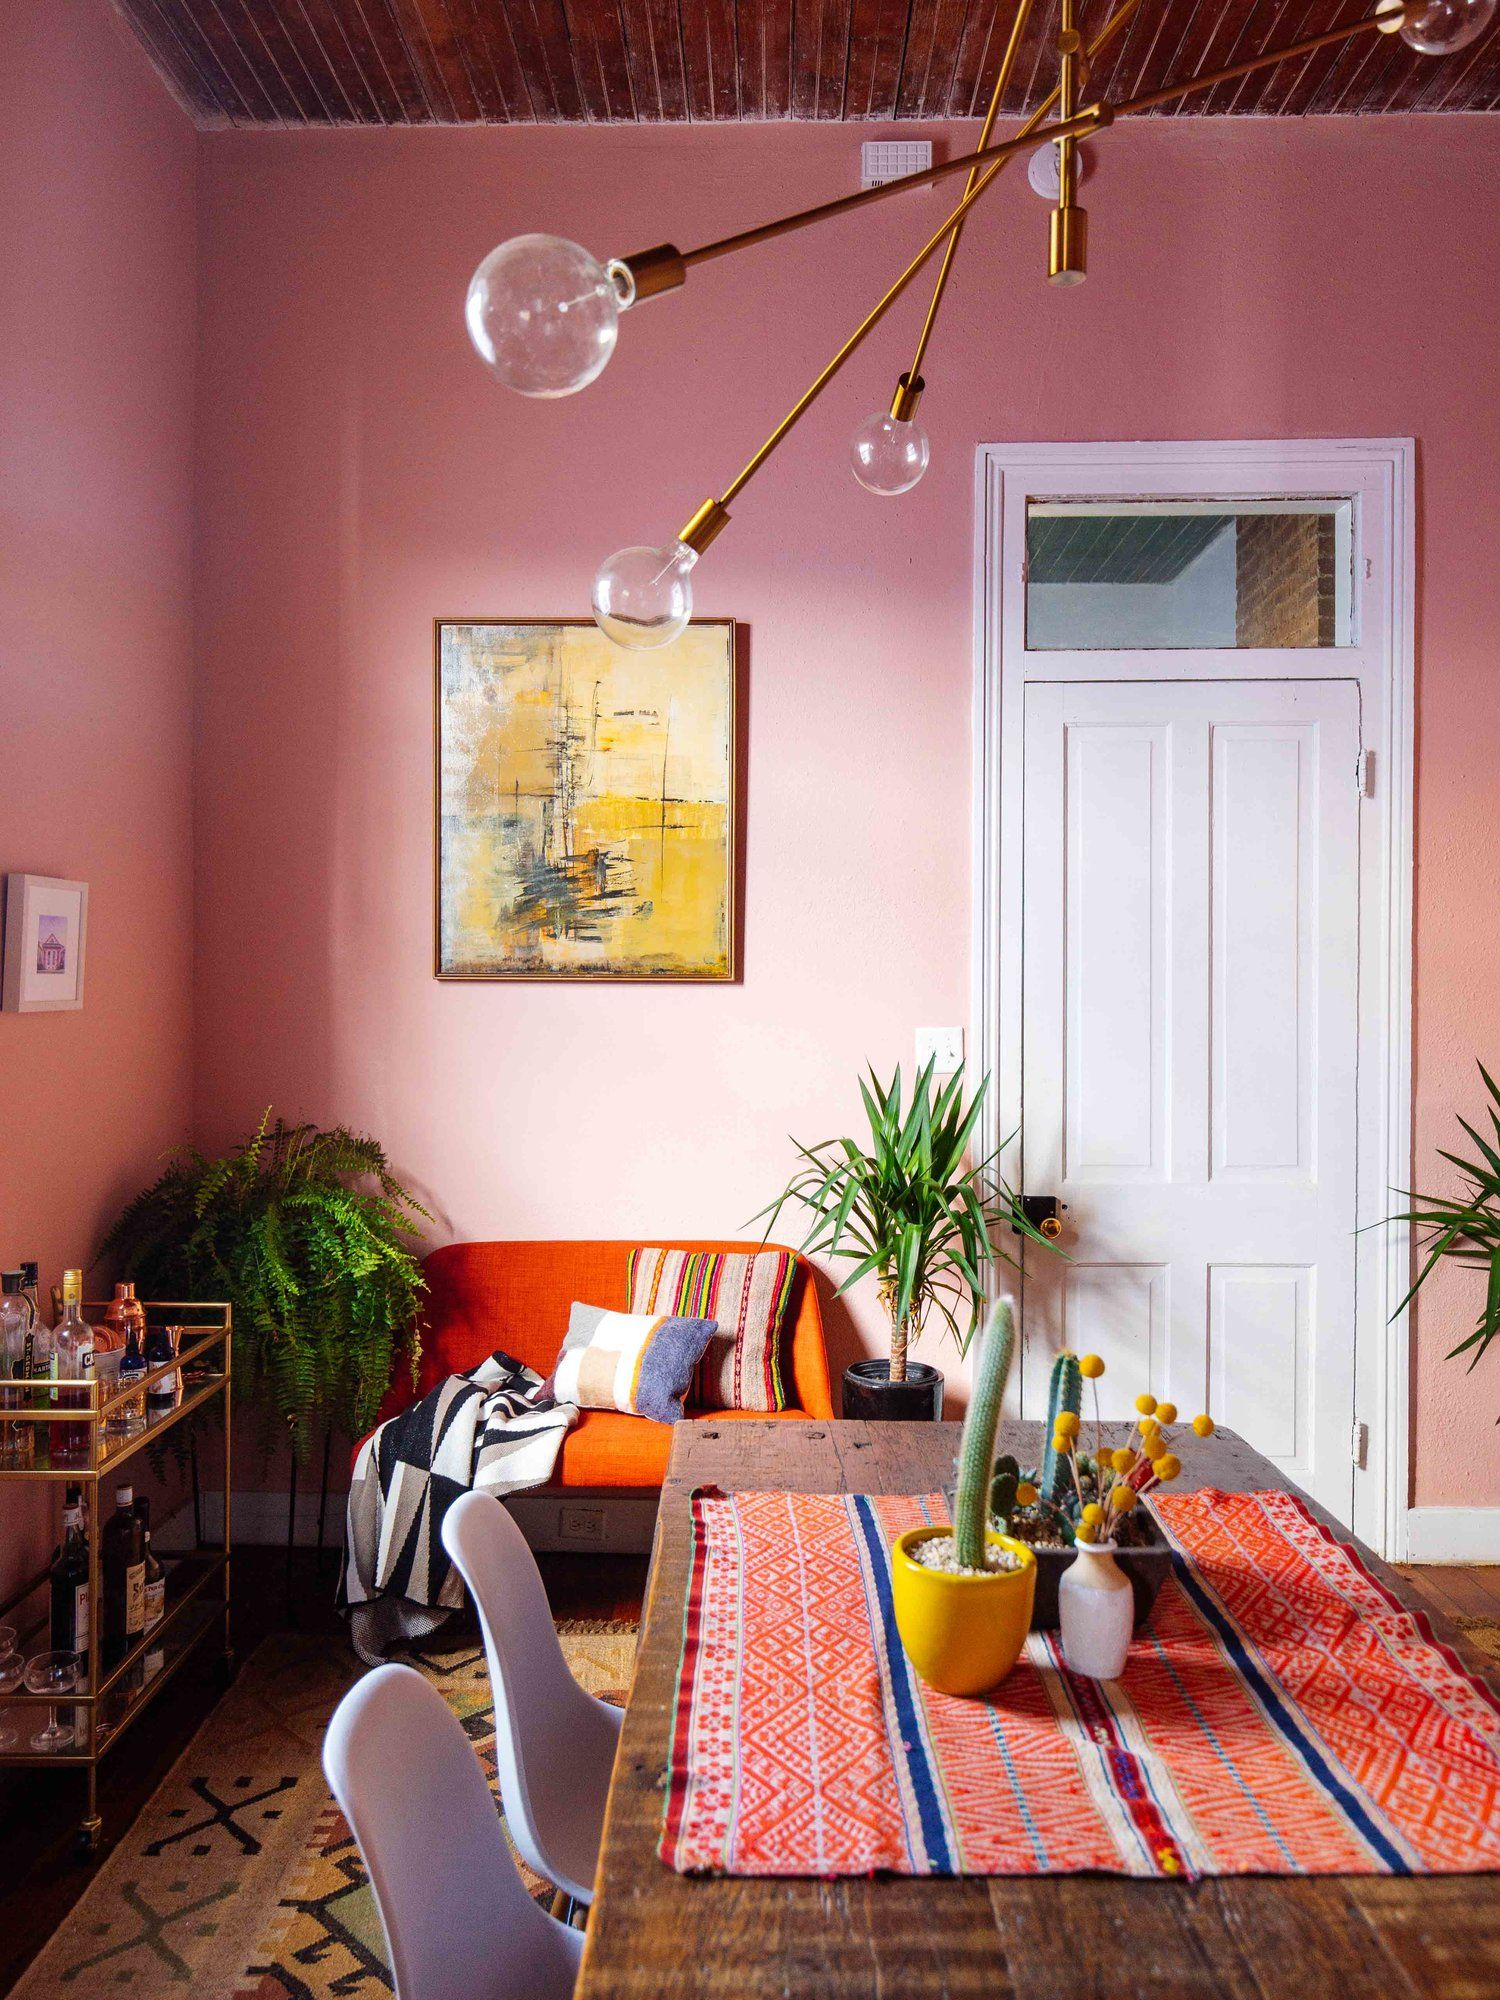 The 10 Best Colors To Pair With Pink